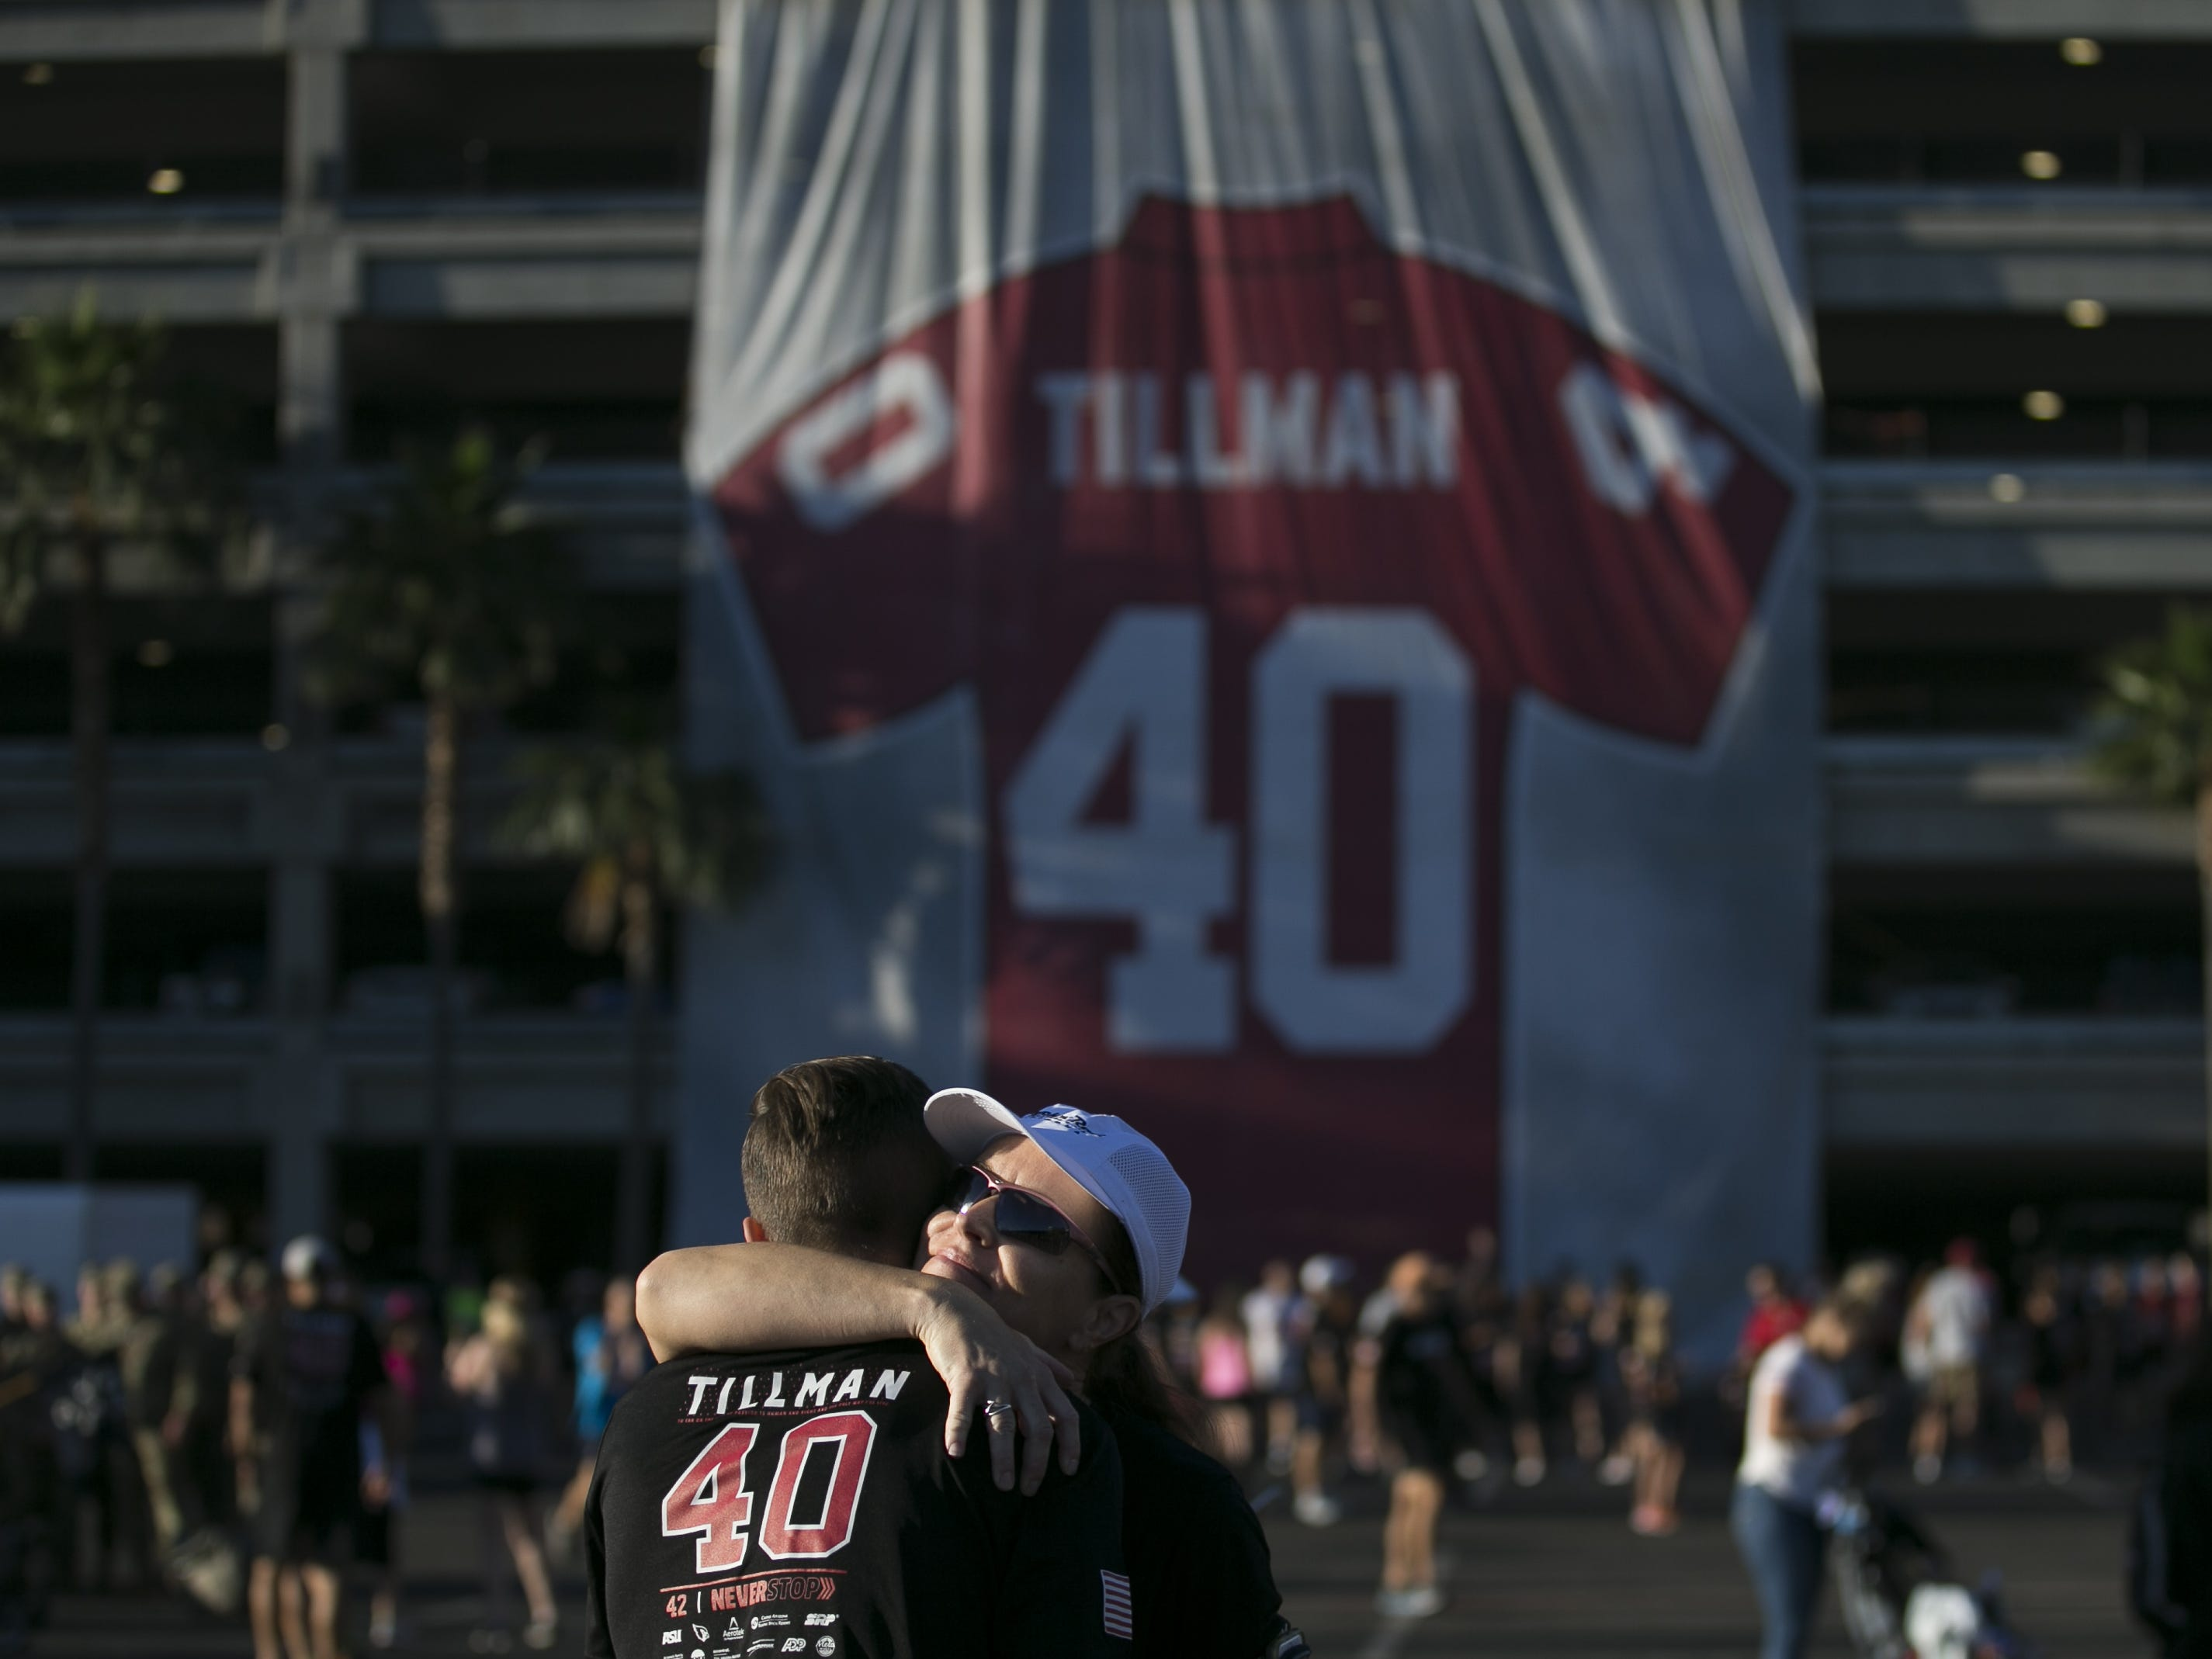 Carolyn Woods (right) hugs her 15-year-old son Justin George (left) before running in Pat's Run 2019 in Tempe on April 27, 2019.